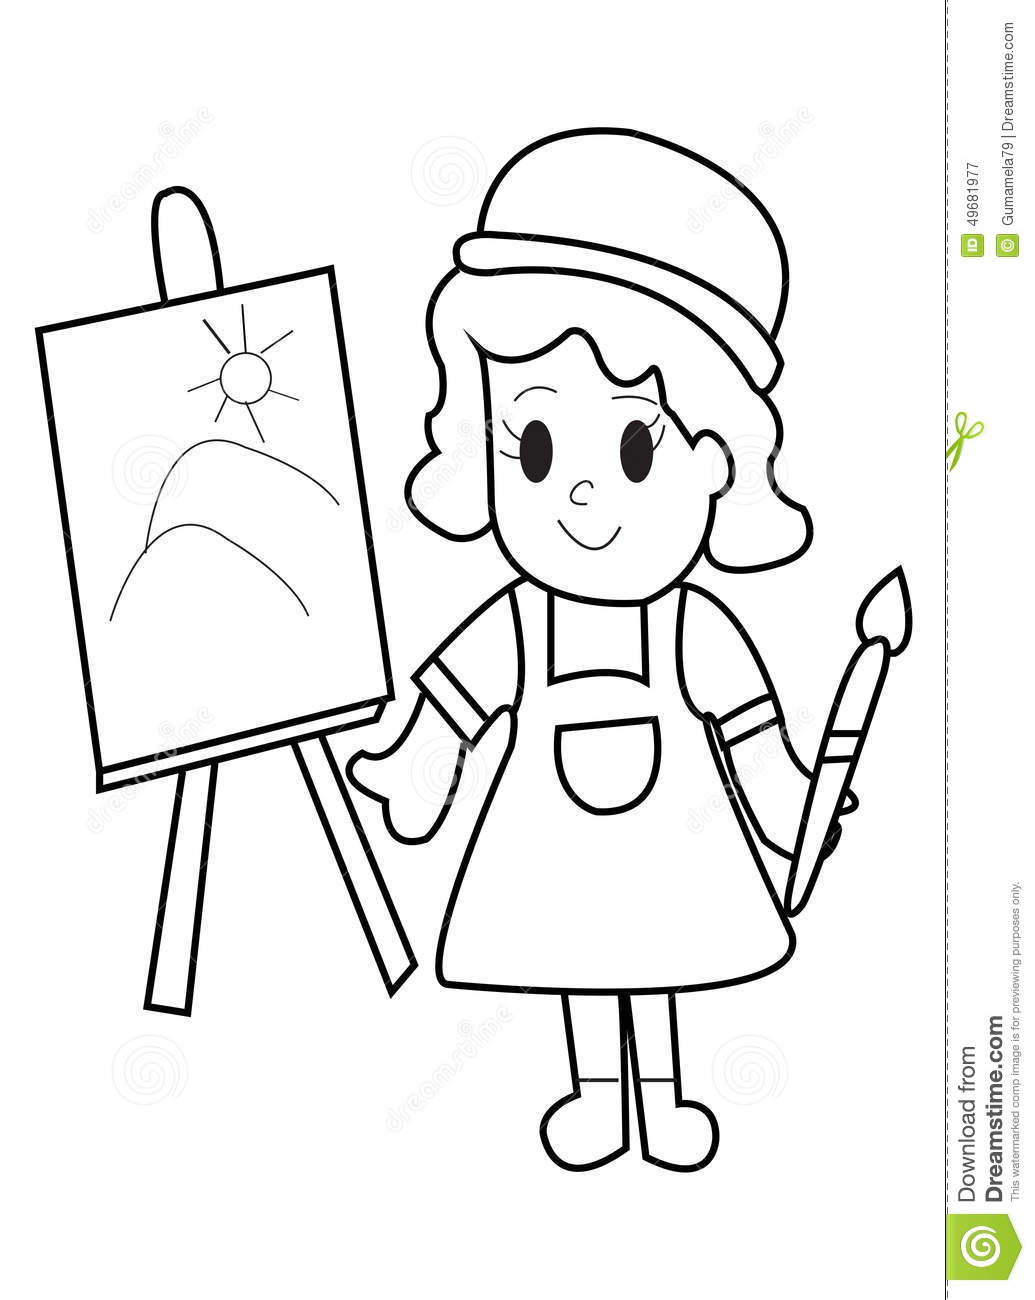 Coloring Page. Drum And Drumsticks Vector Illustration